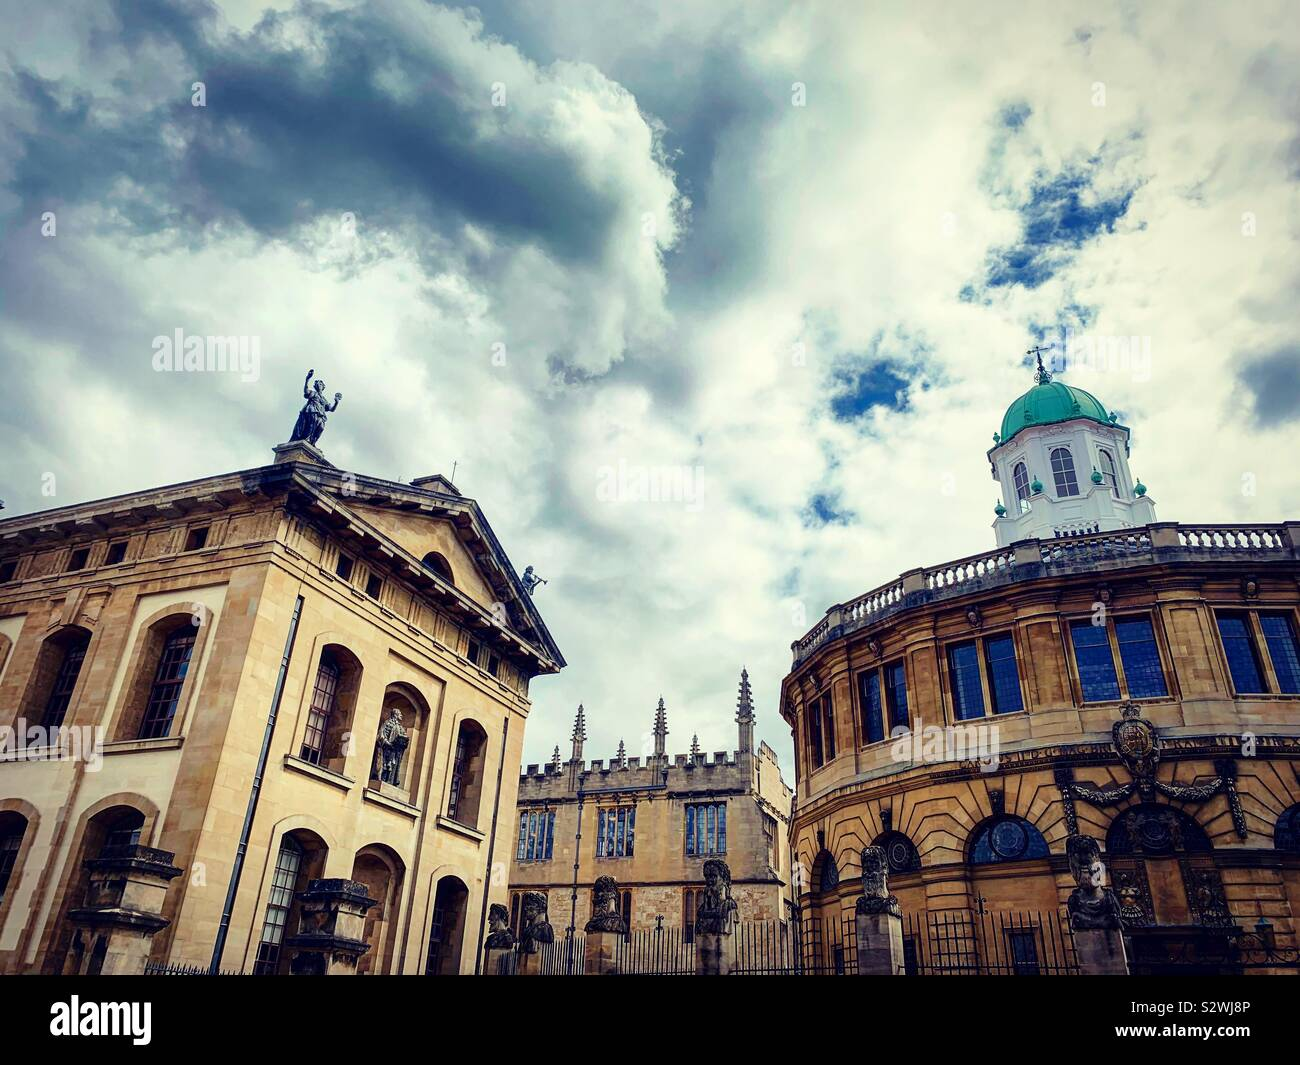 The Bodleian Library and Sheldonian Theatre, Oxford Stock Photo